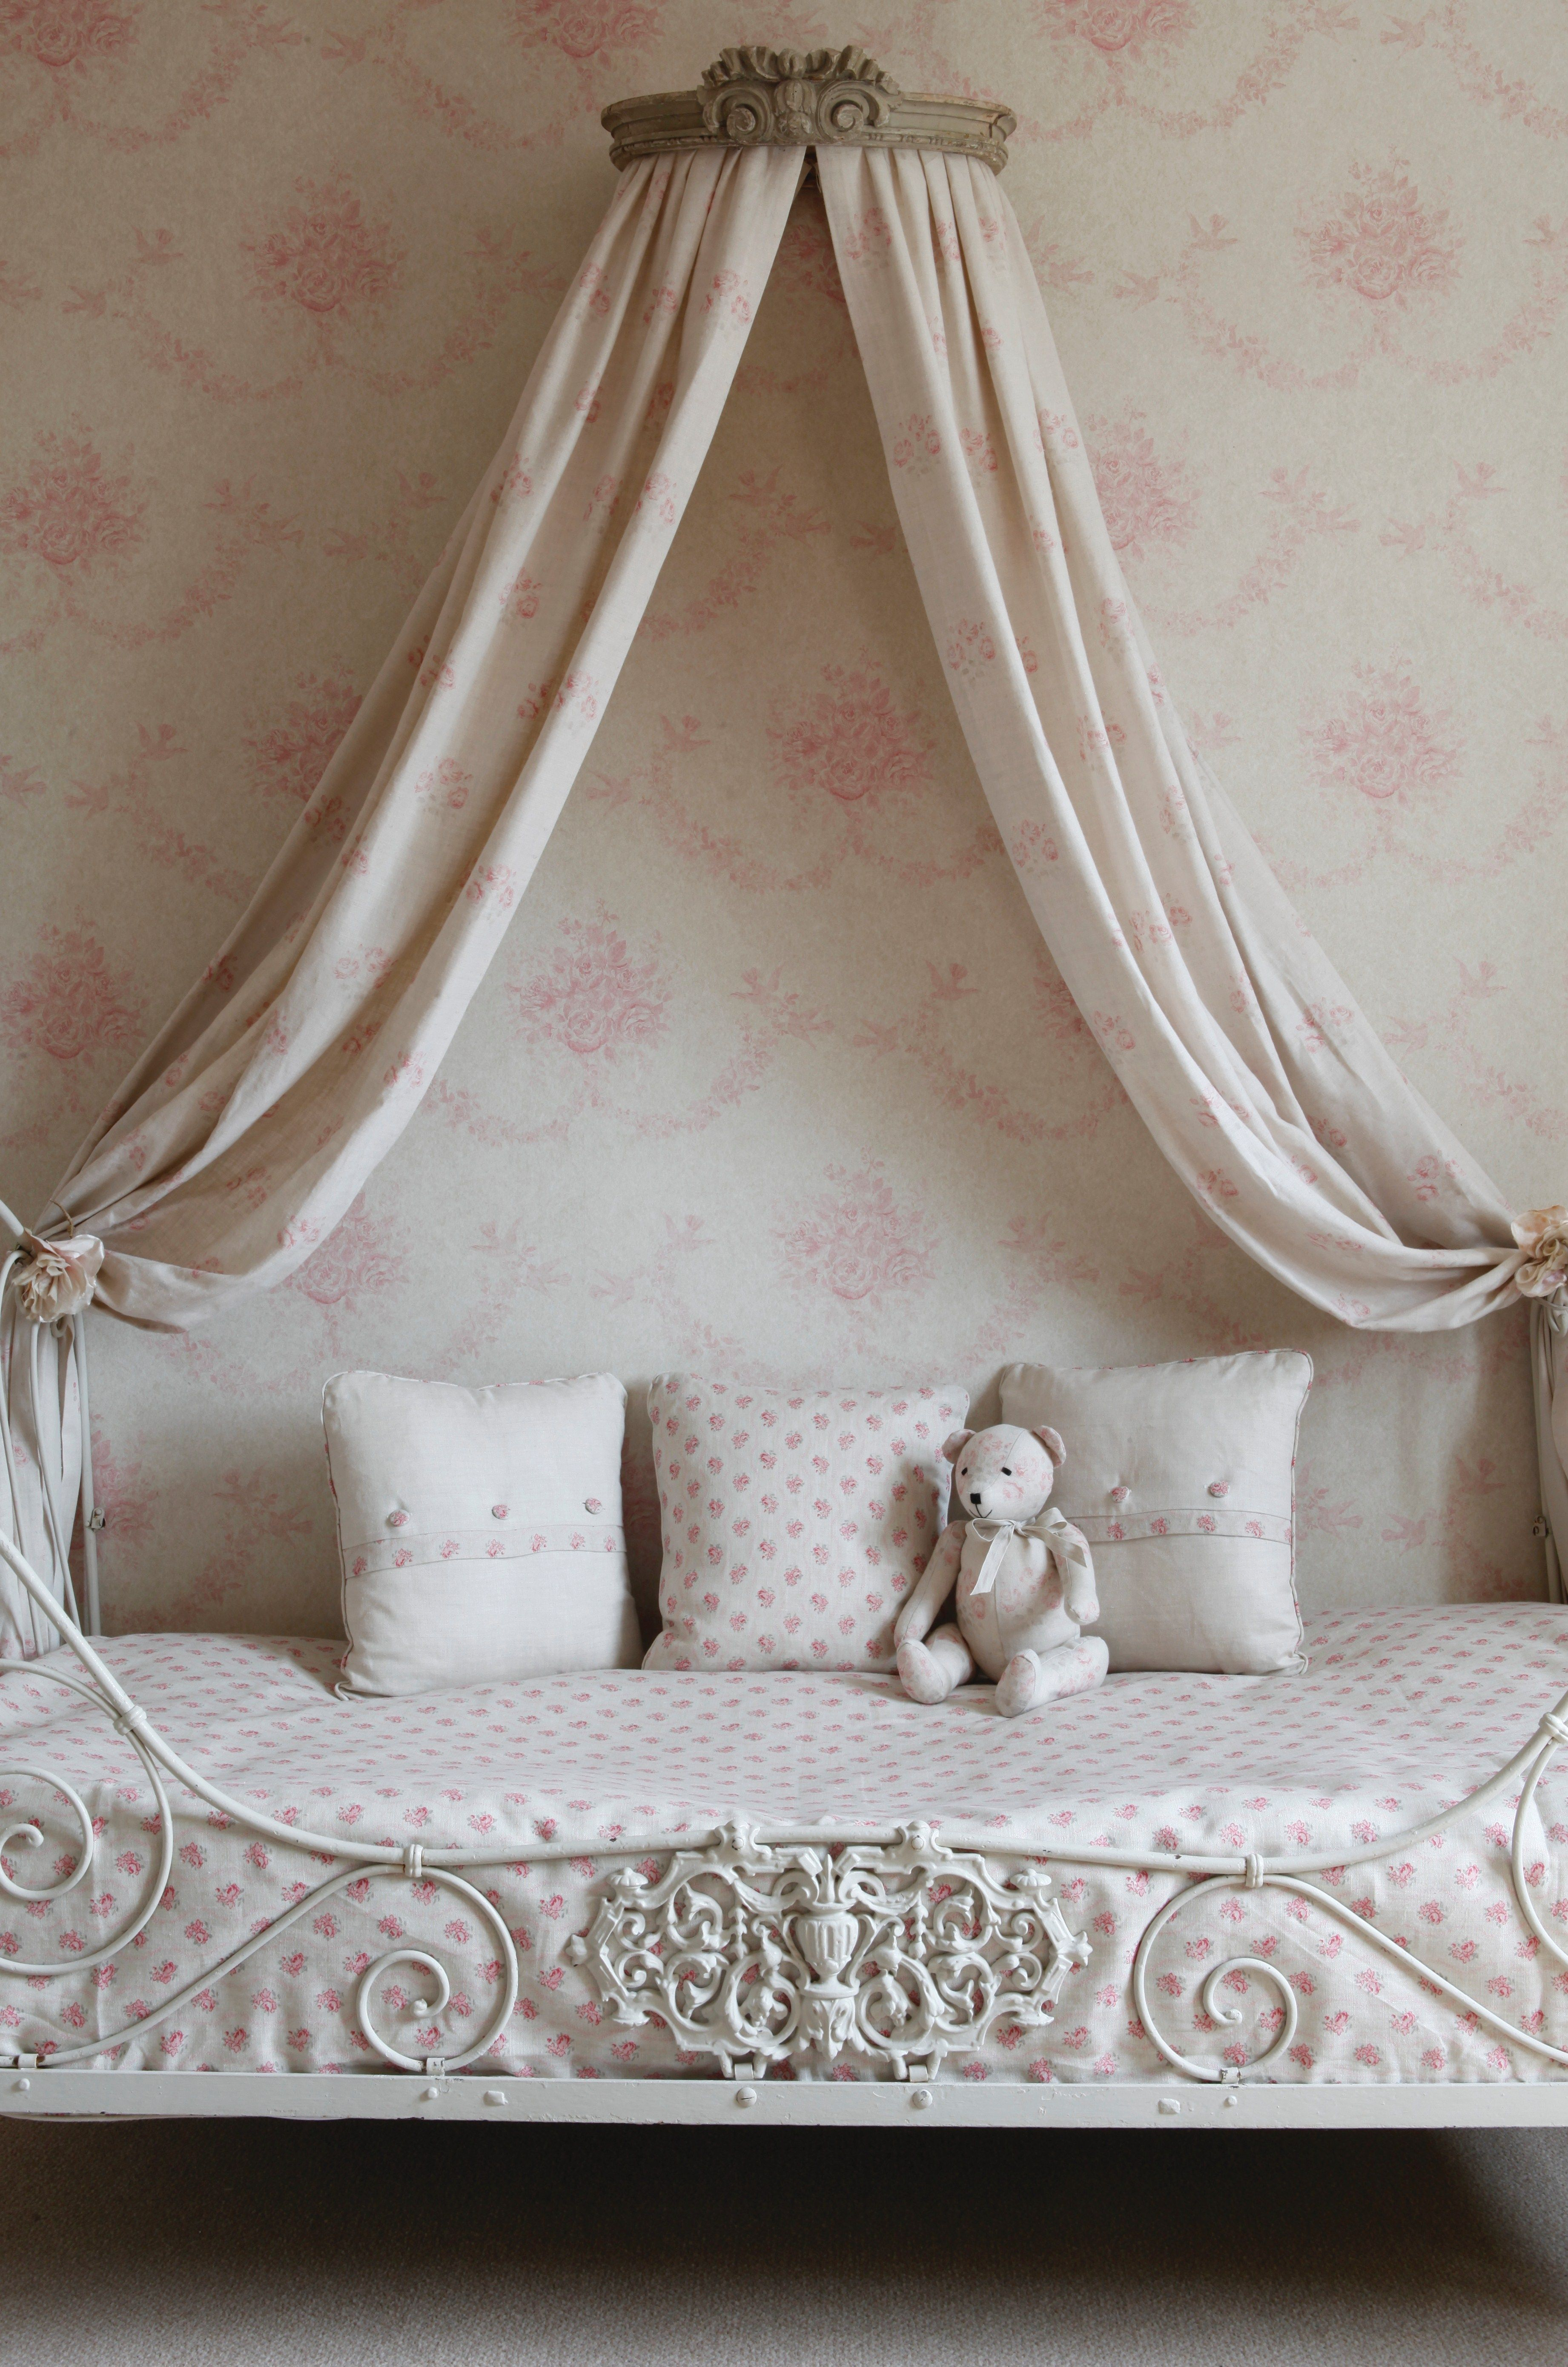 This french style bed with a pediment canopy is perfect for French style gazebo